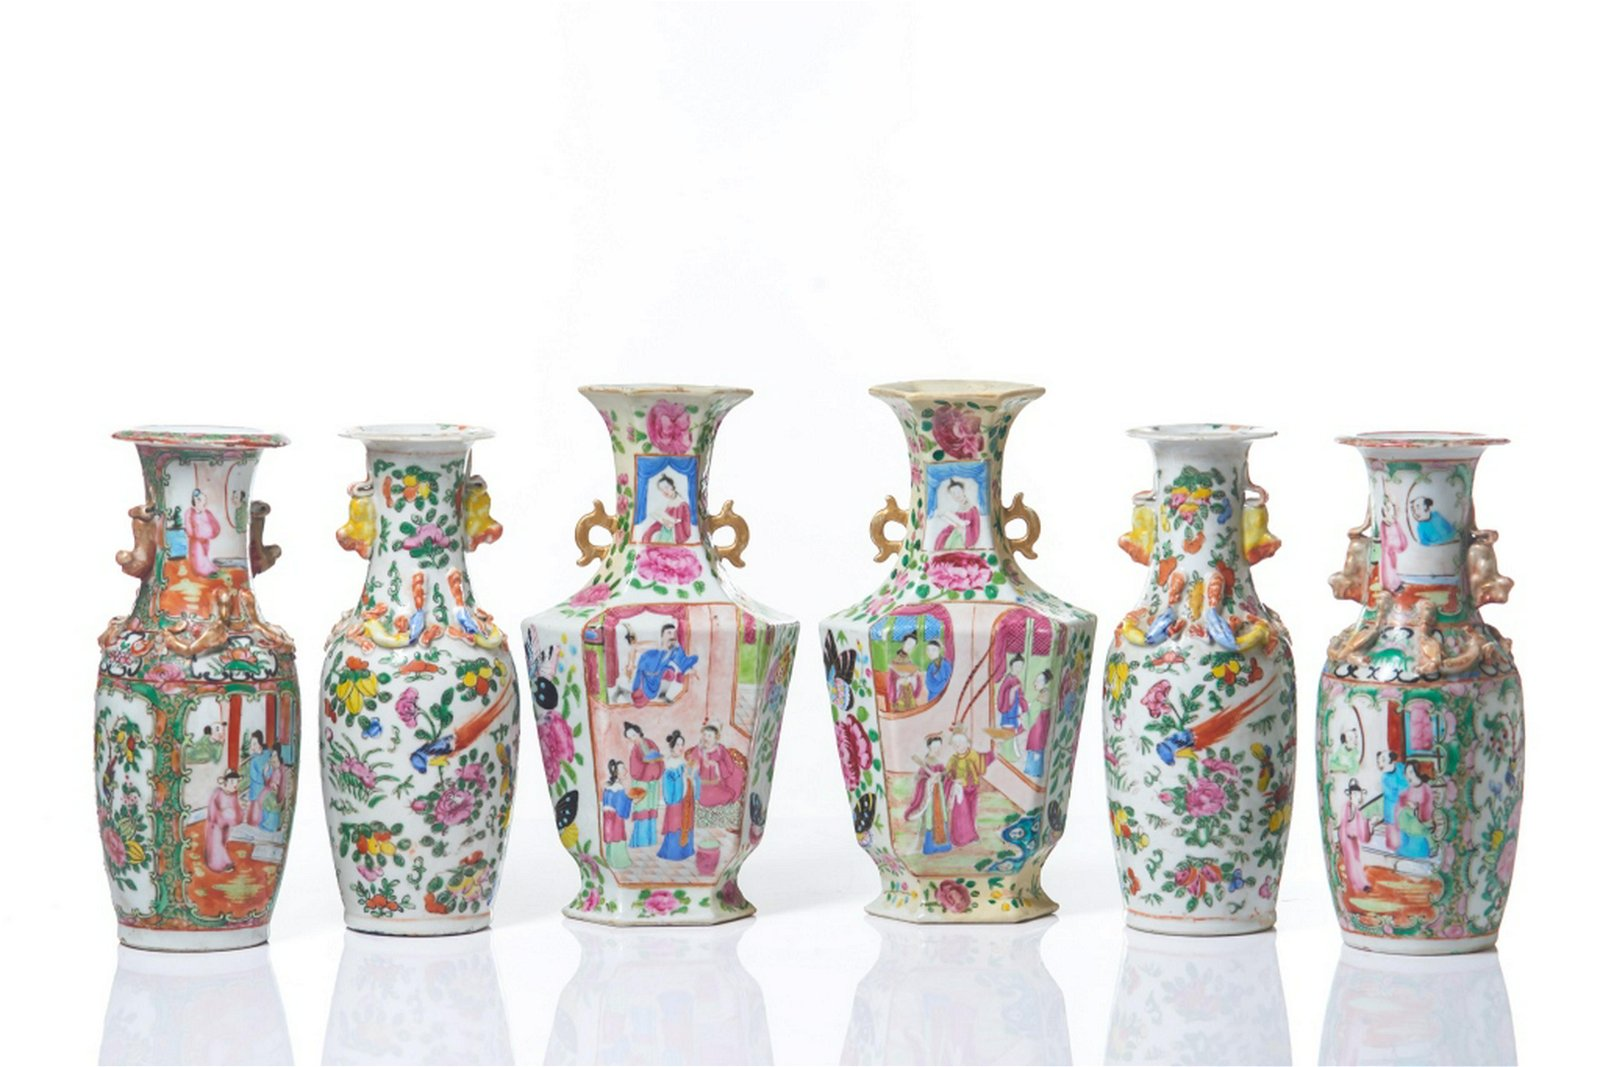 THREE PAIRS OF EXPORT CANTON FAMILLE ROSE VASES